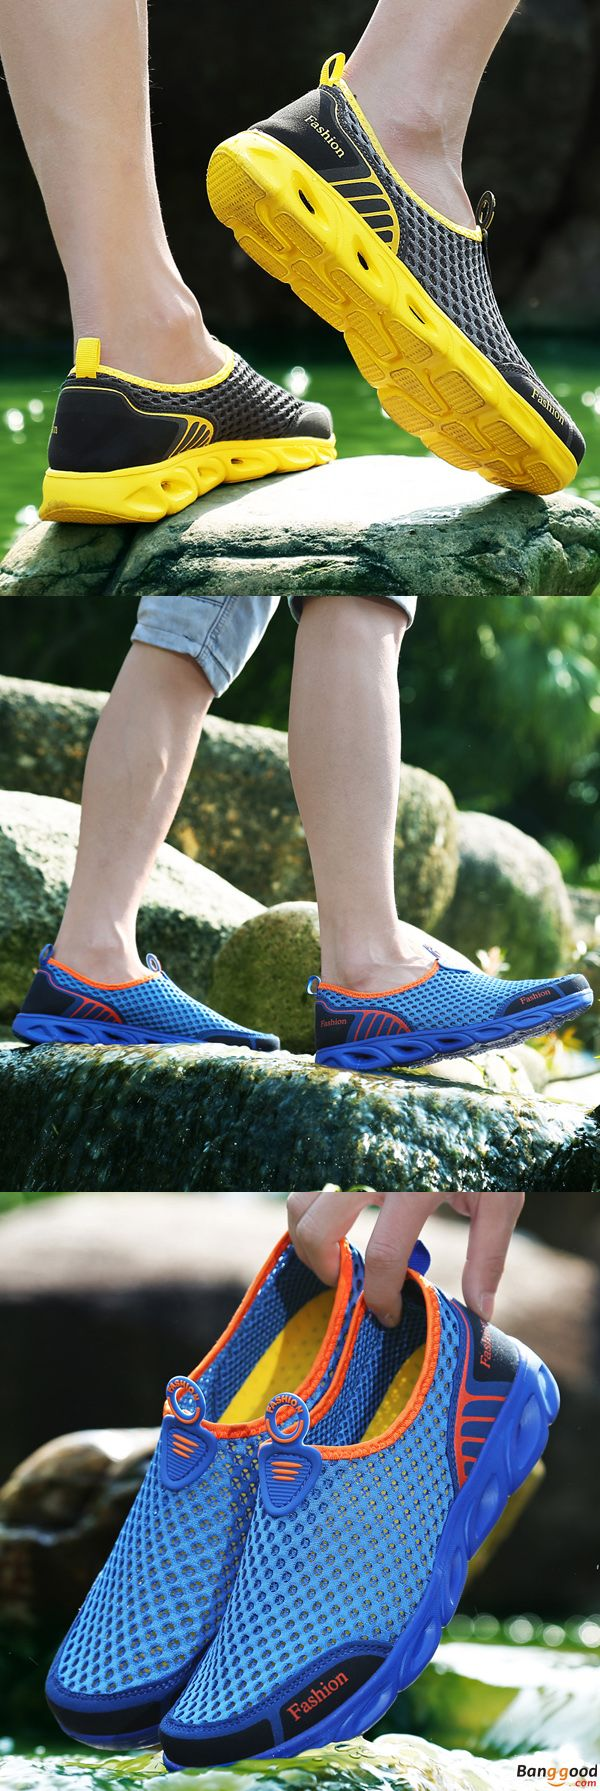 US$24.99 + Free shipping. Men Sport Shoes, Hiking Shoes, Water Shoes, Hollow Out Shoes, Casual Mesh Shoes, Antiskid Shoes. Upper Material: Mesh. Color: Grey, Blue. Feel Free Hiking in the Woods.